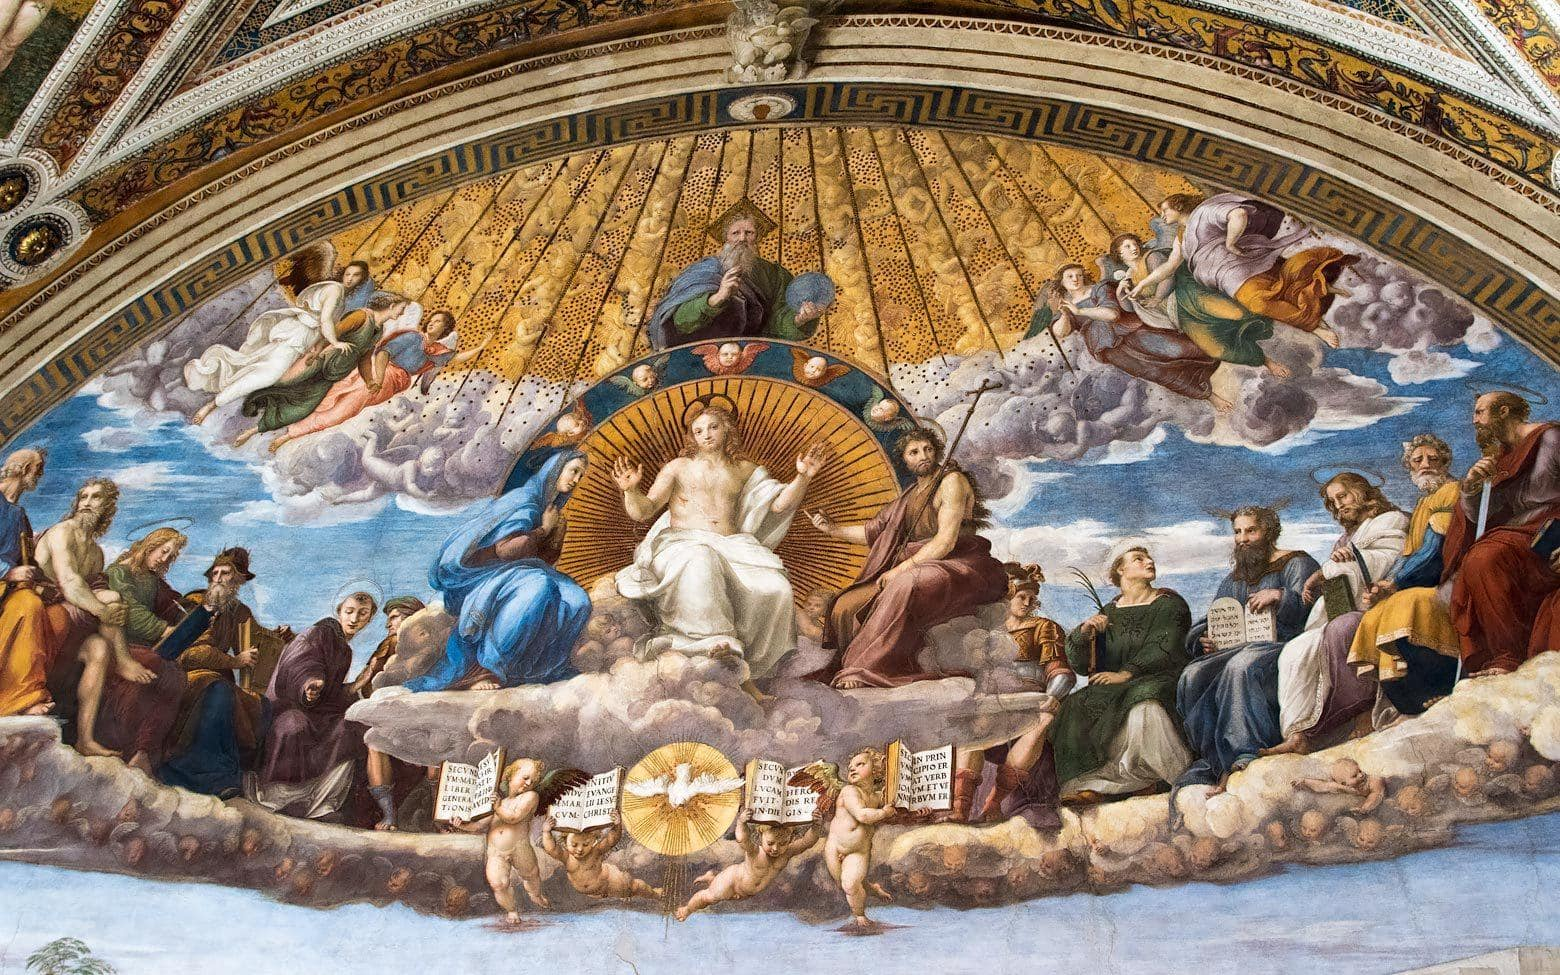 3 days in Rome itinerary day 3 - Vatican Museums